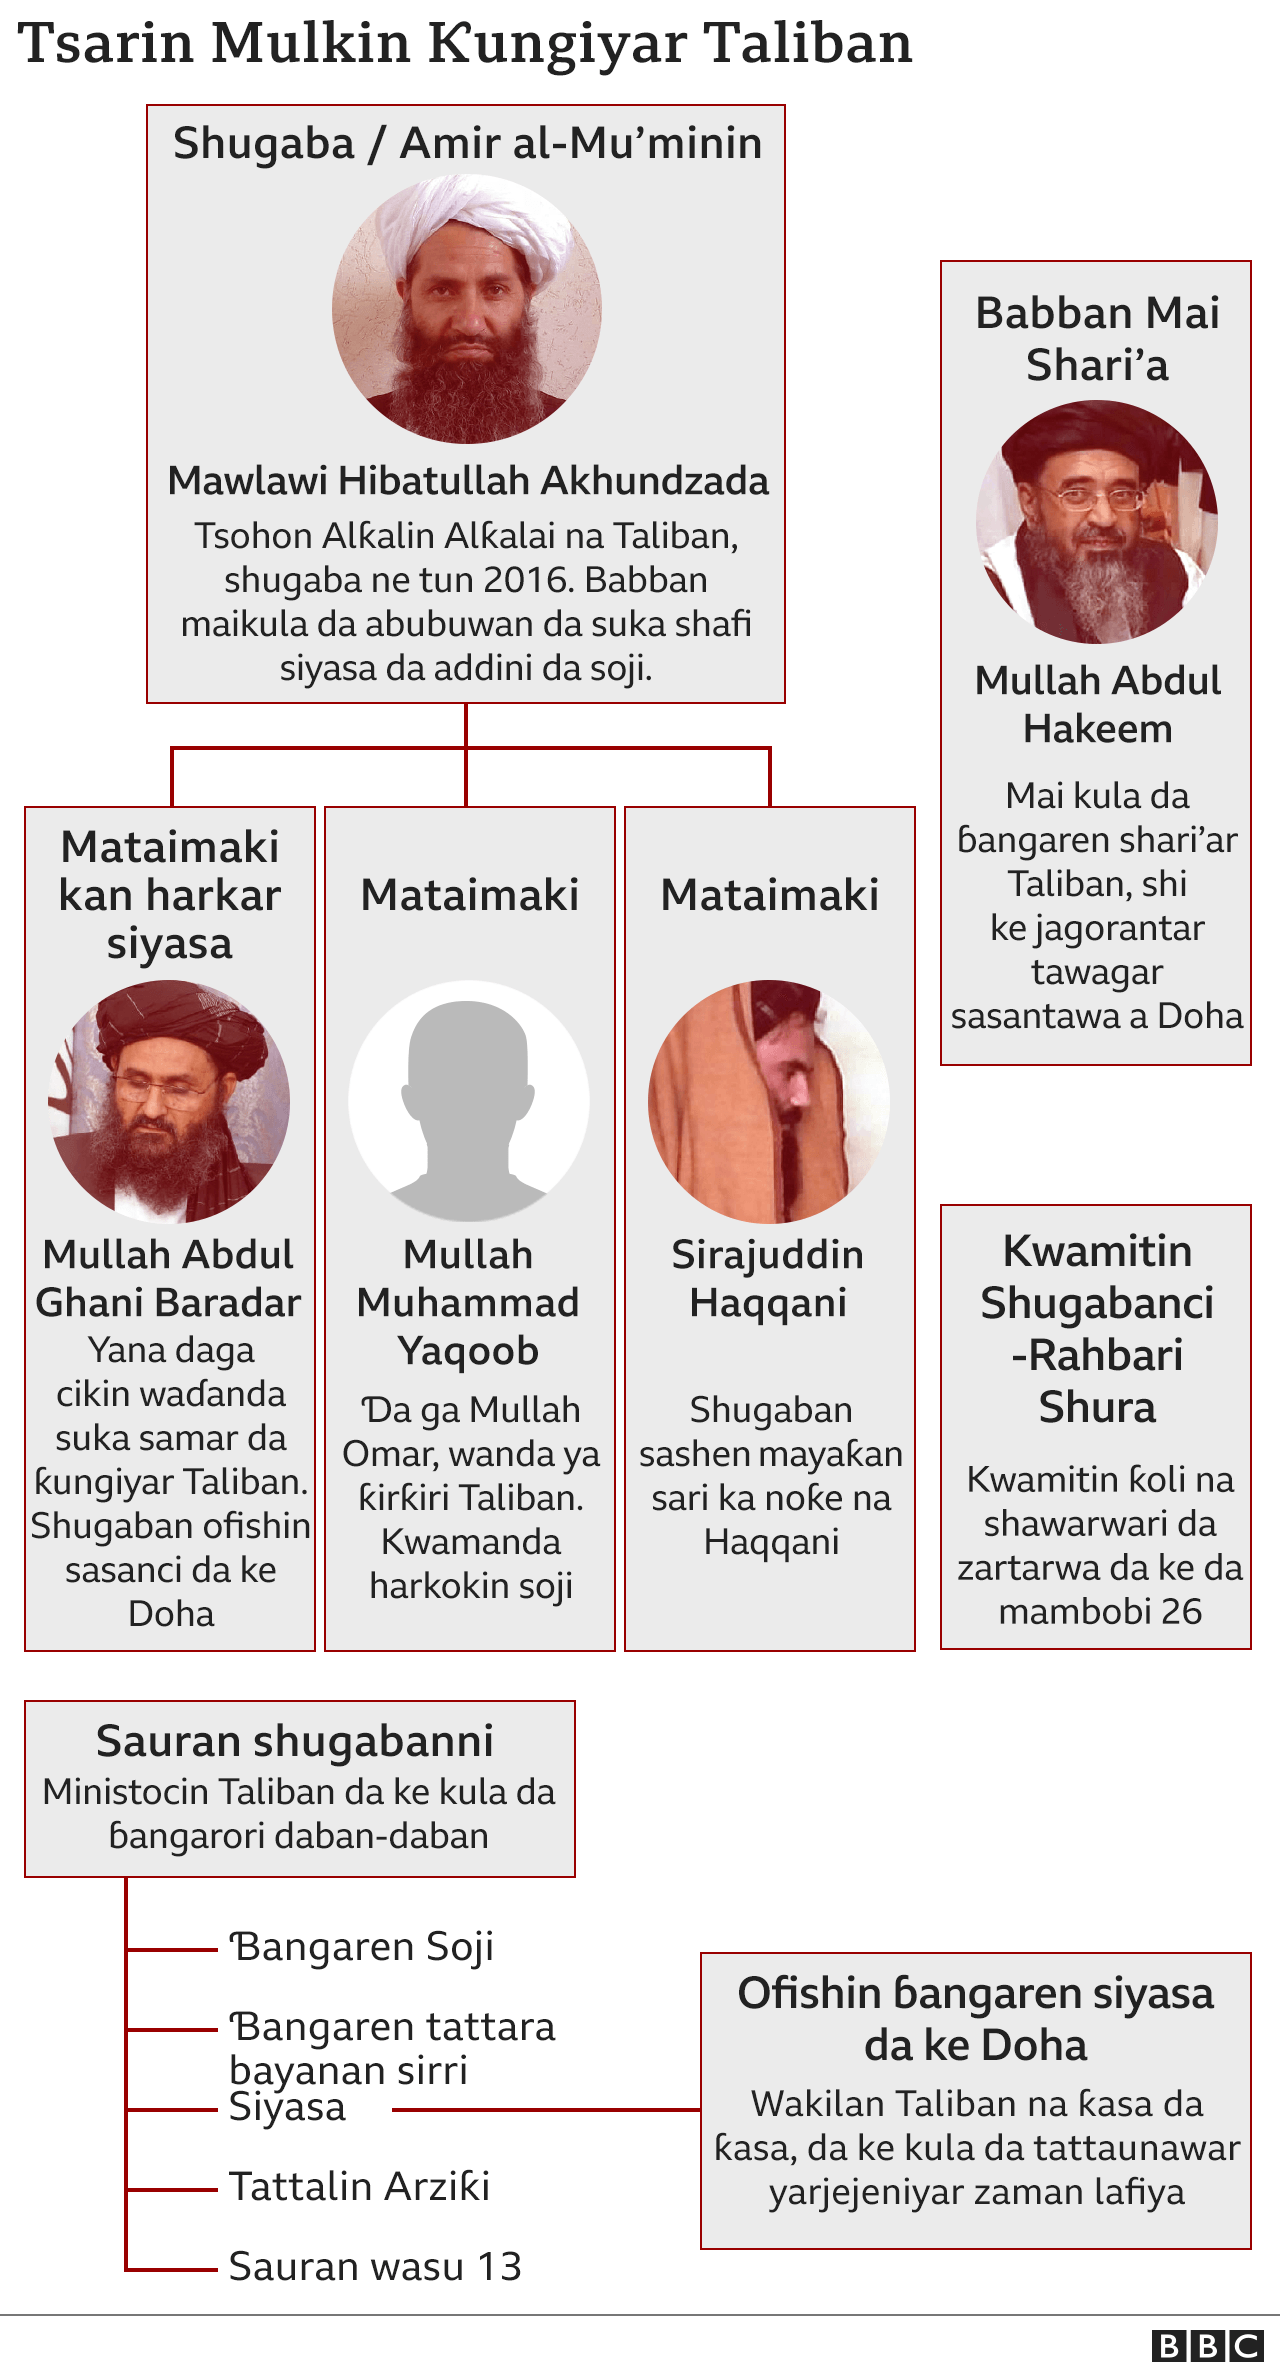 Taliban Structure